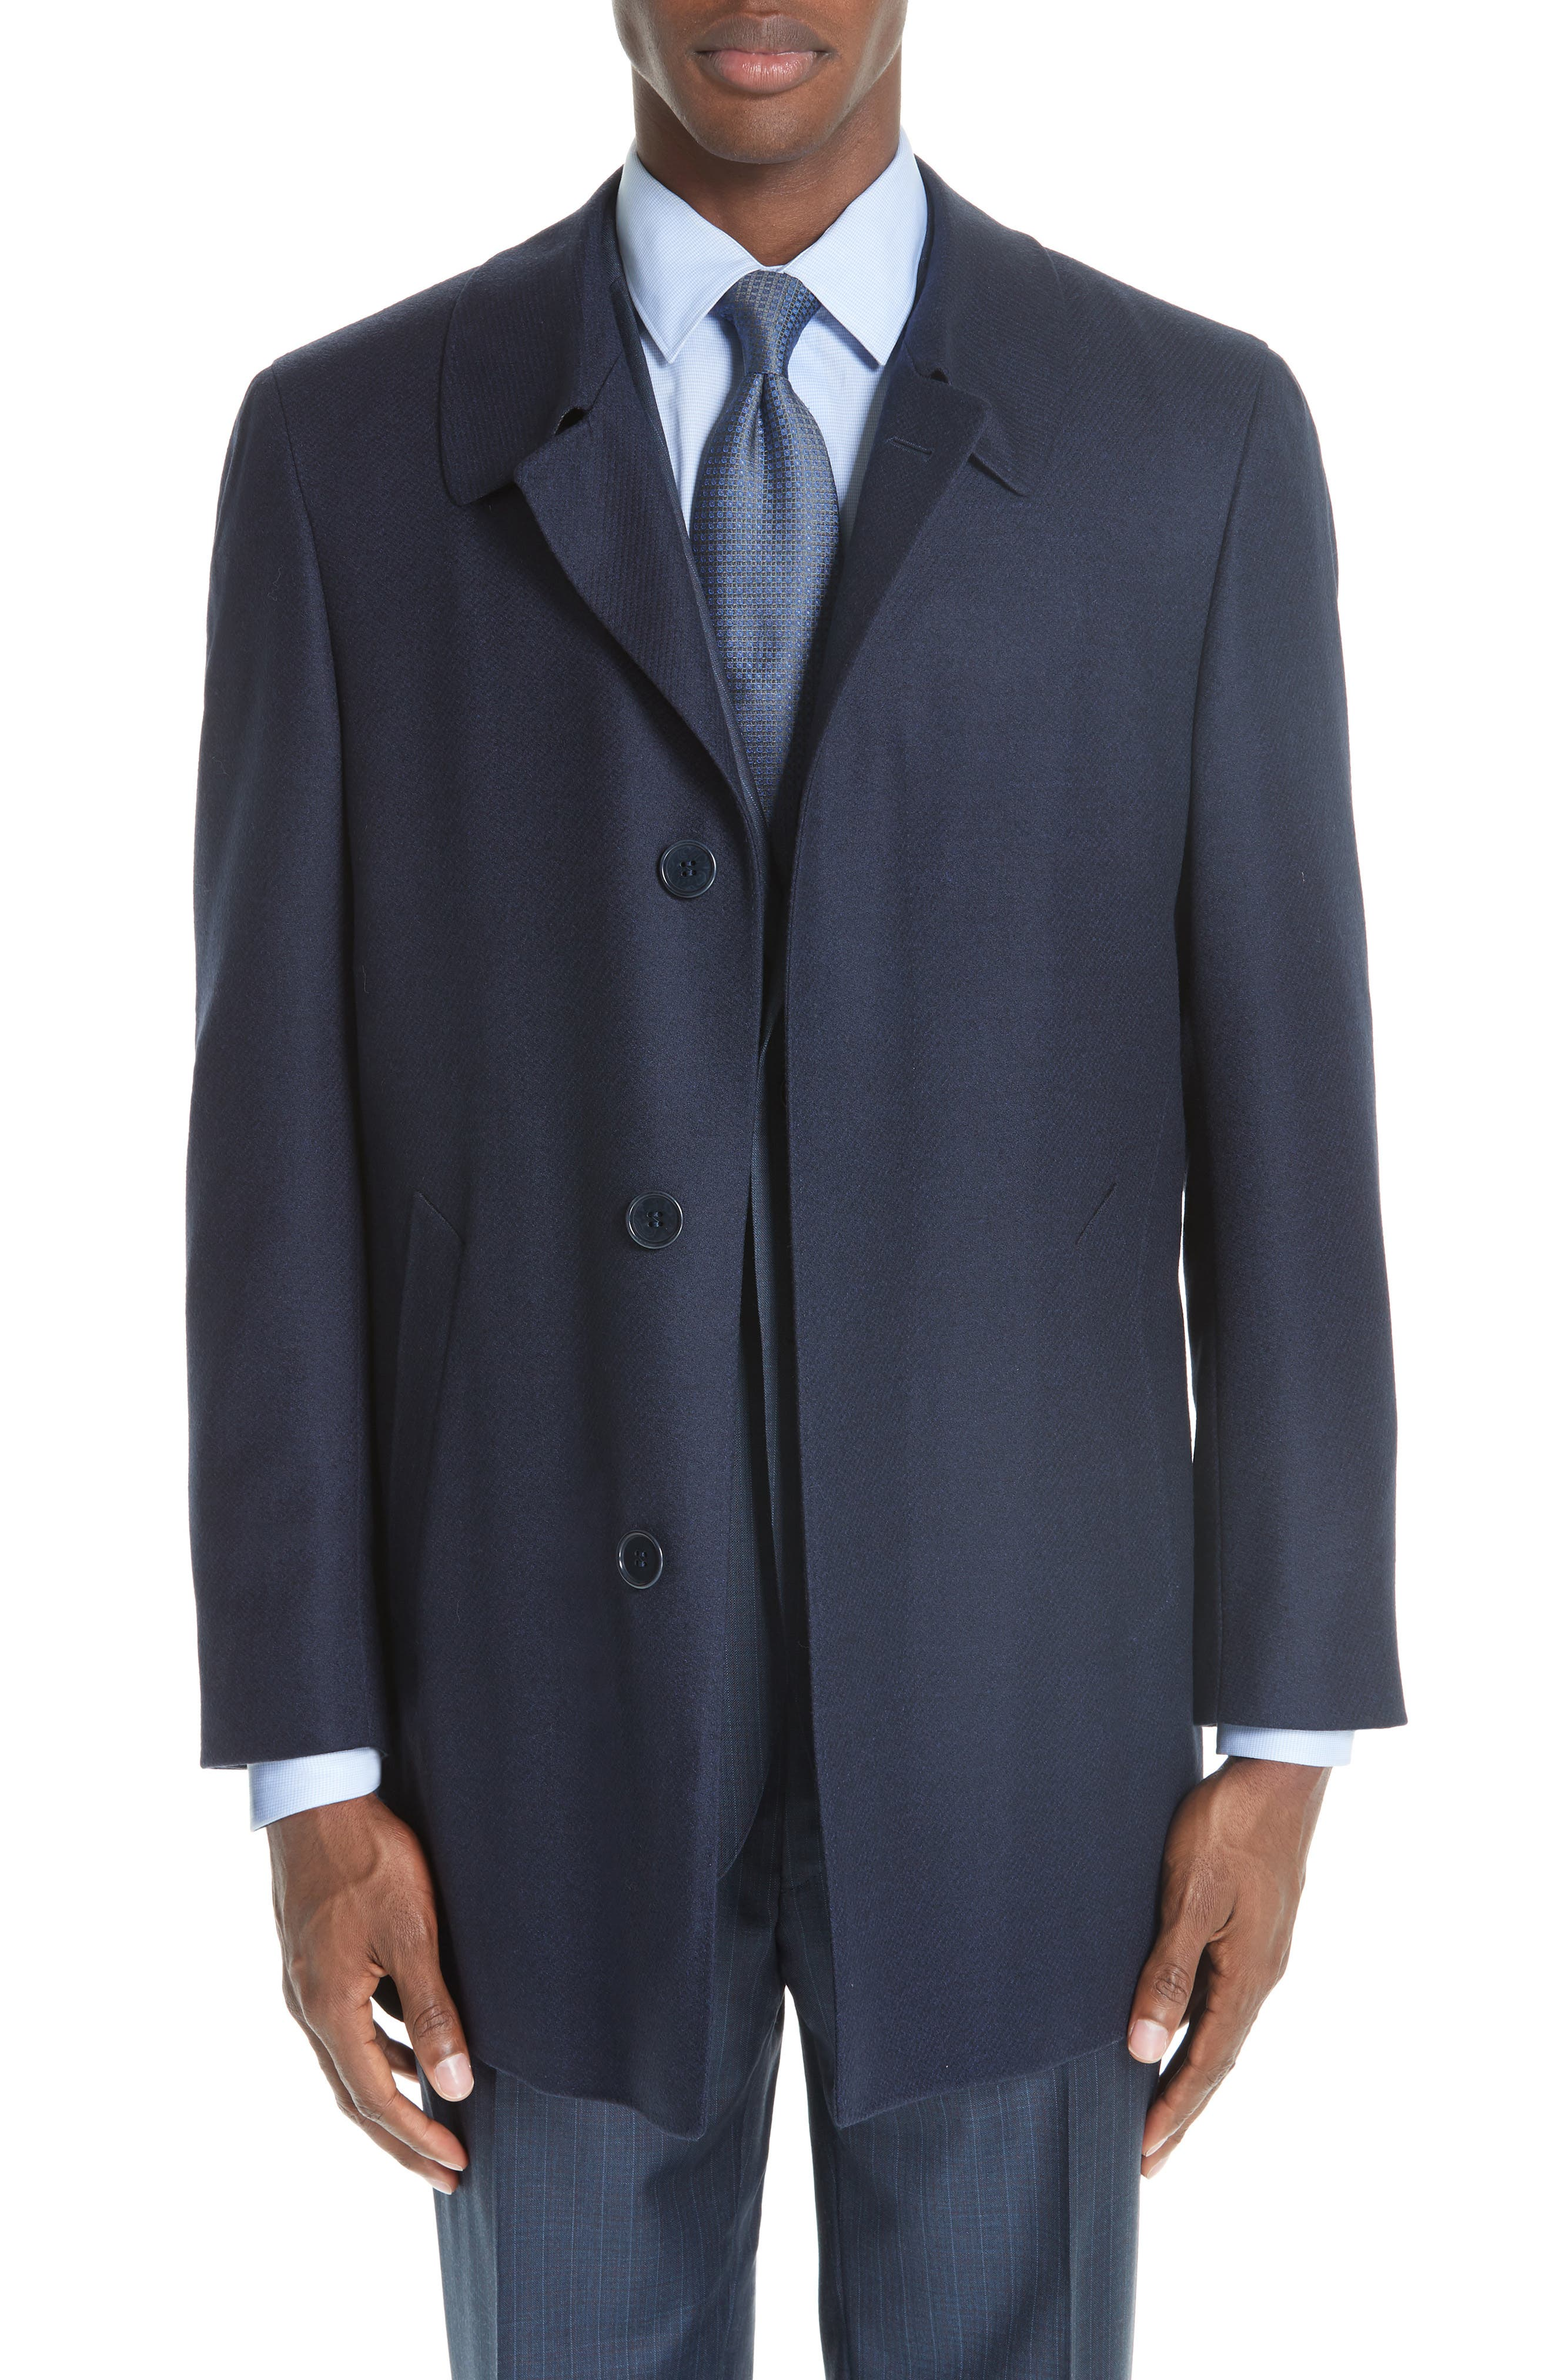 Impeccabile Wool Car Coat,                             Main thumbnail 1, color,                             NAVY